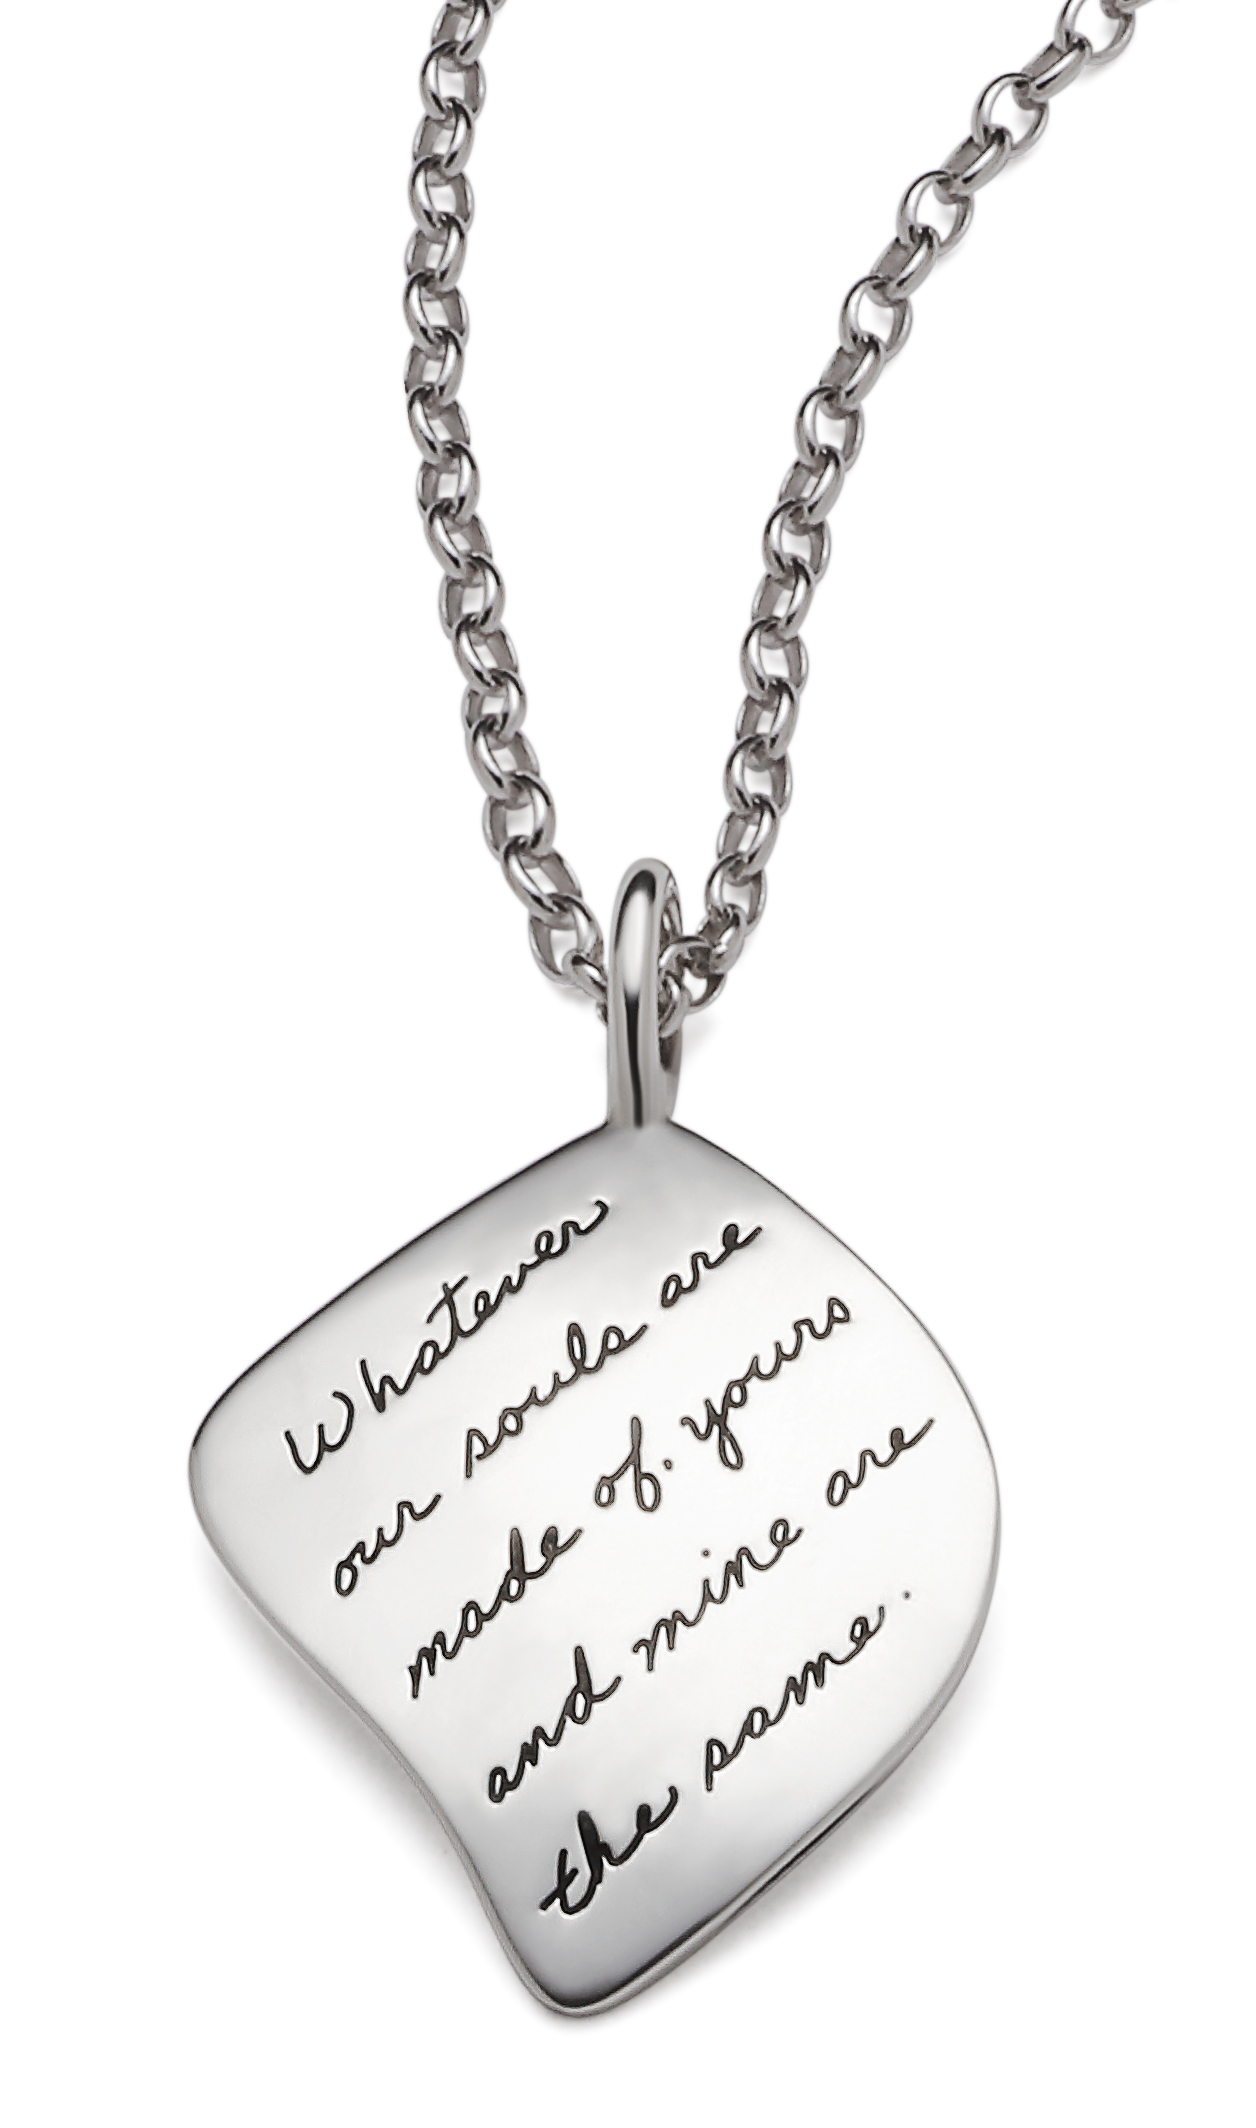 Sterling Silver Inspirational Irregular shaped Pendant with the quotation: Whatever our souls are made of, yours and mine are the same.